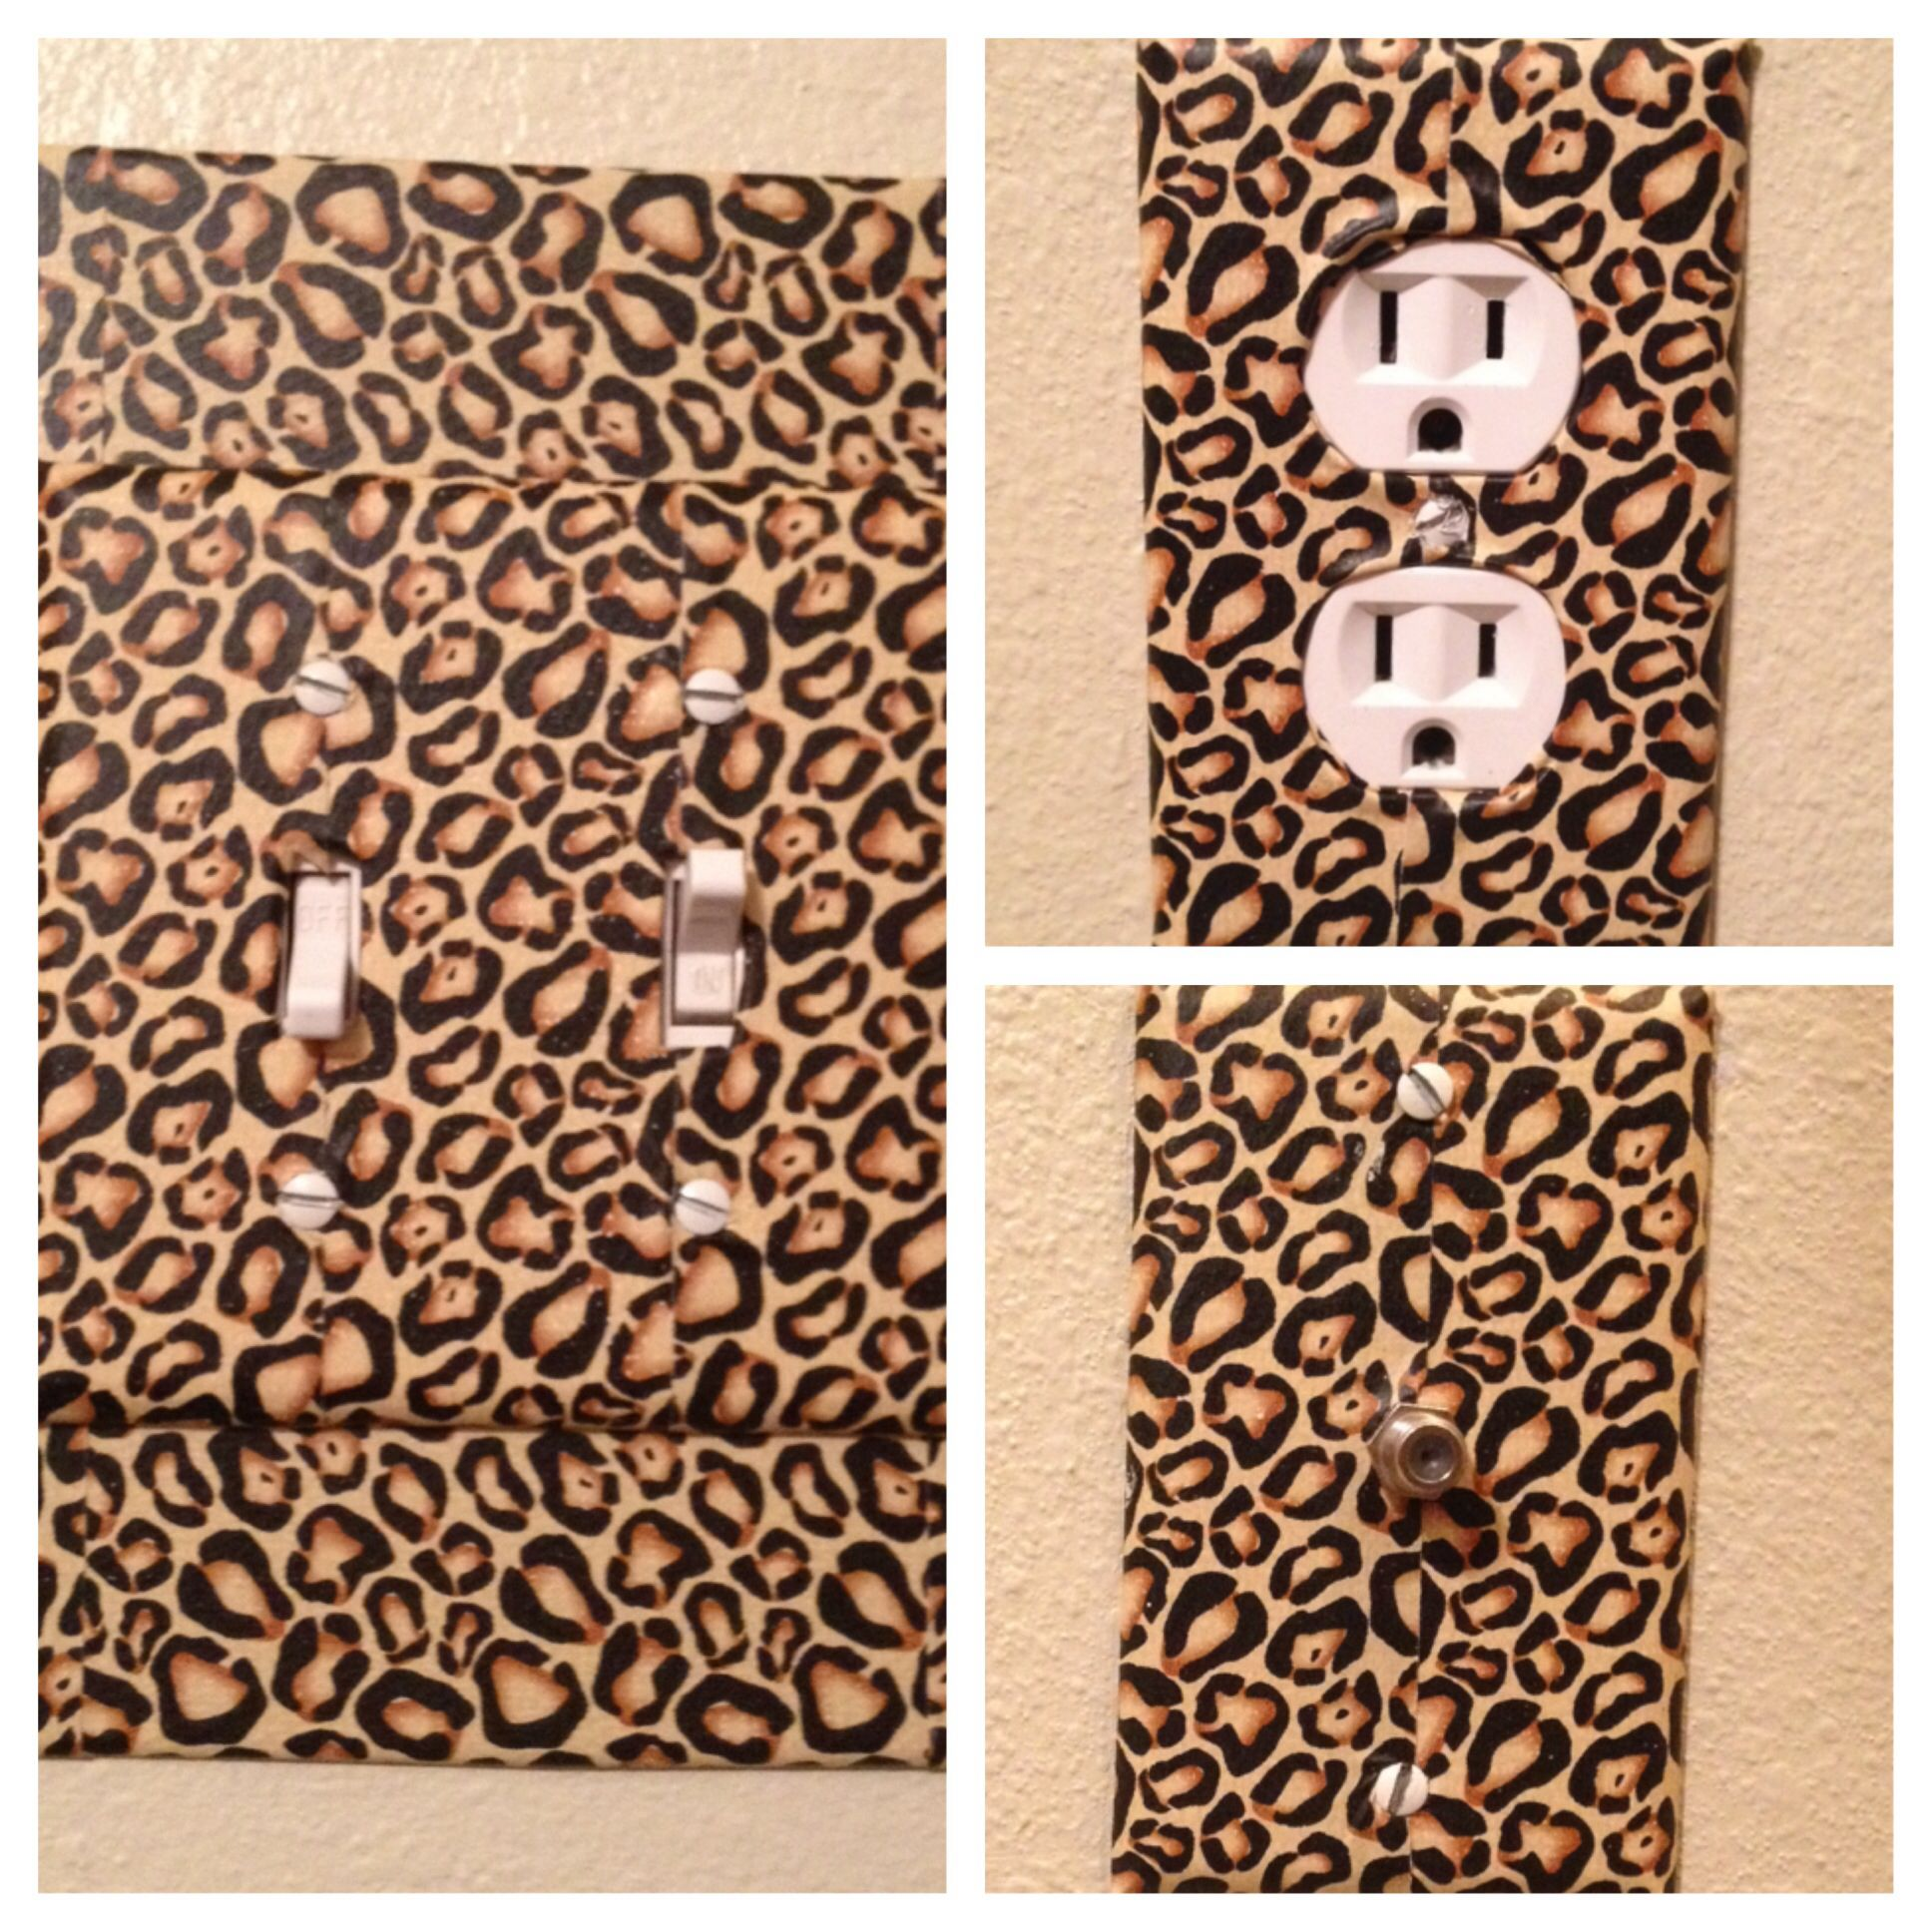 Diy leopard print duct tape light switches outlets tips tricks diy leopard print duct tape light switches outlets mozeypictures Gallery